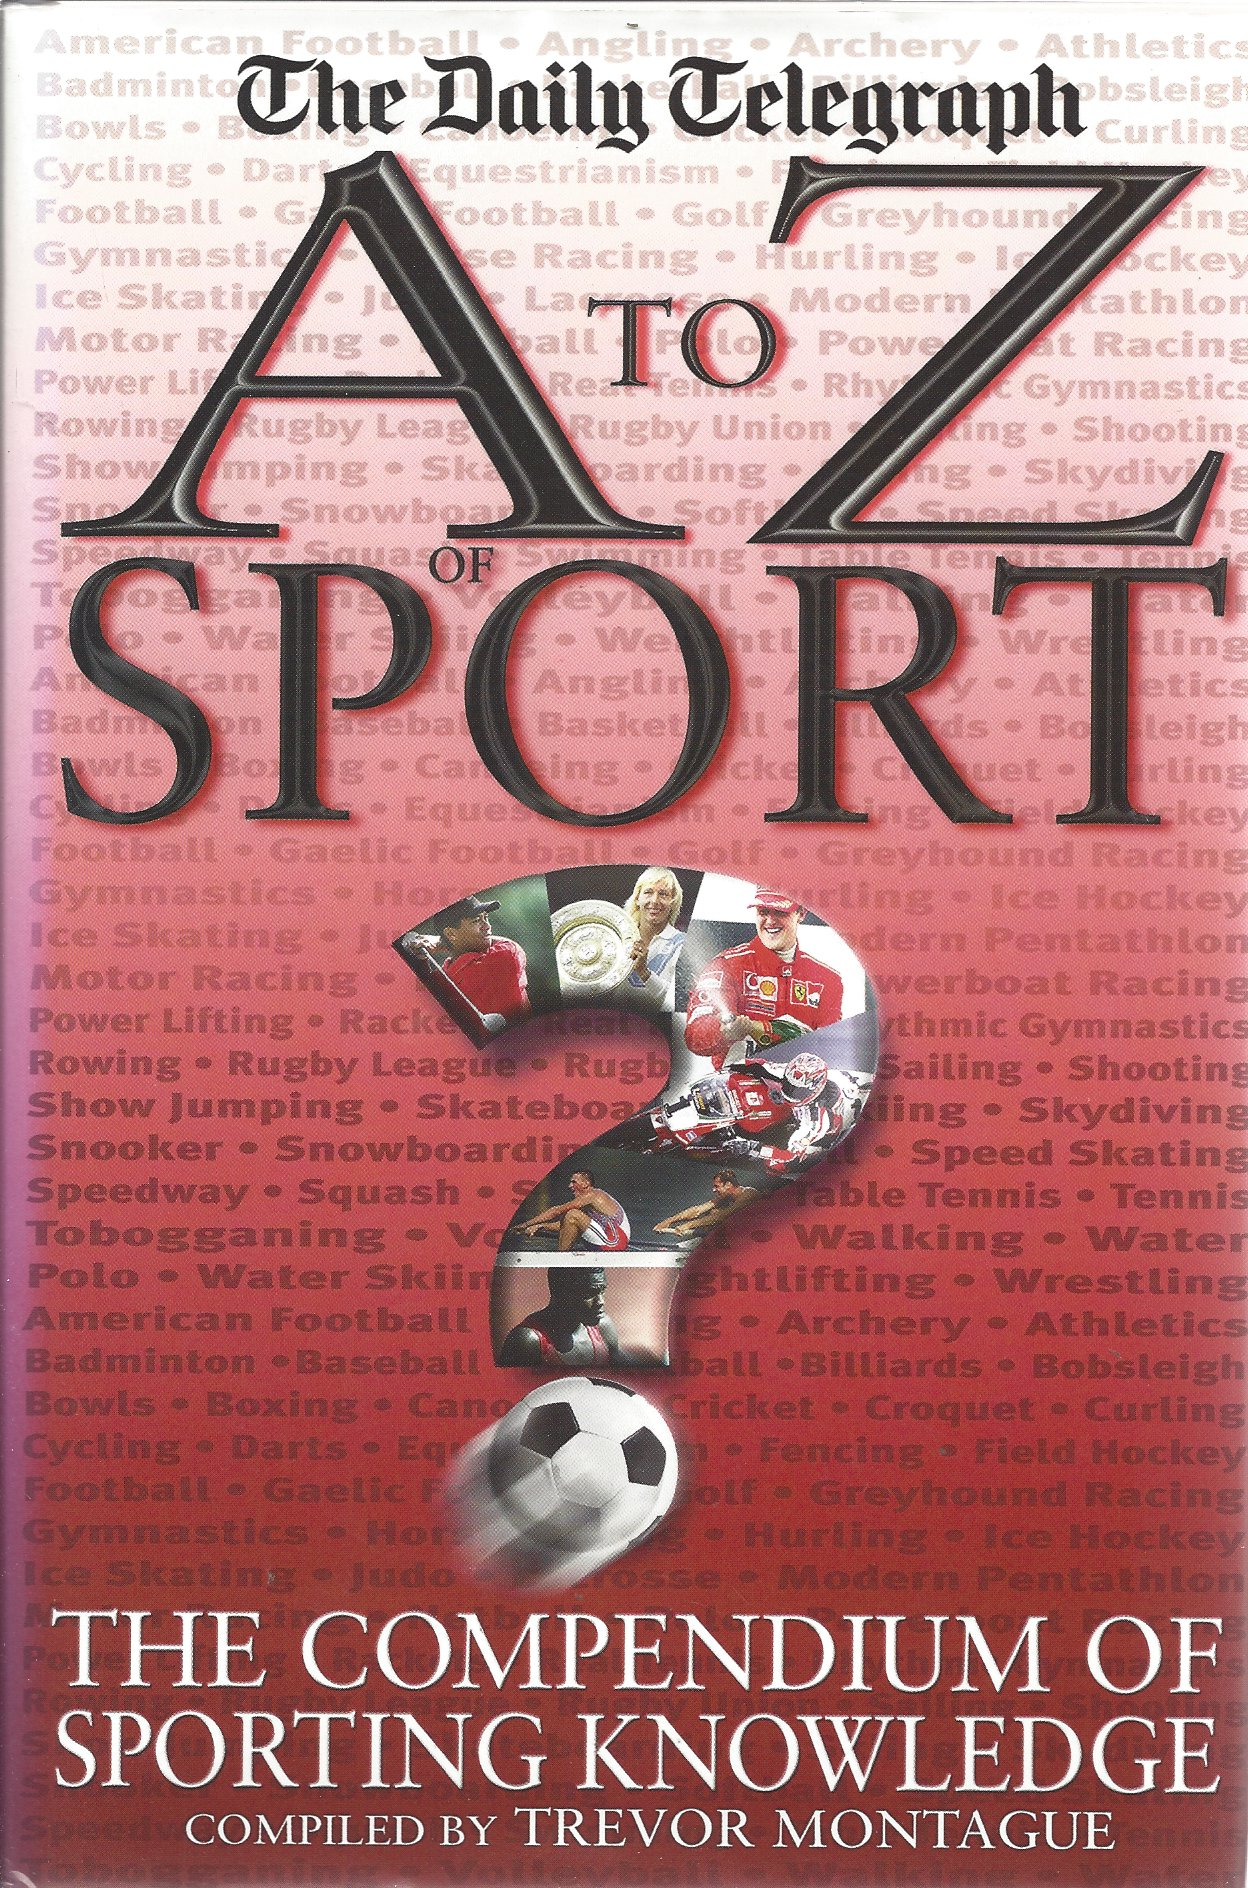 Montague, Trevor - A to Z of Sport -The Compendium of Sporting Knowledge